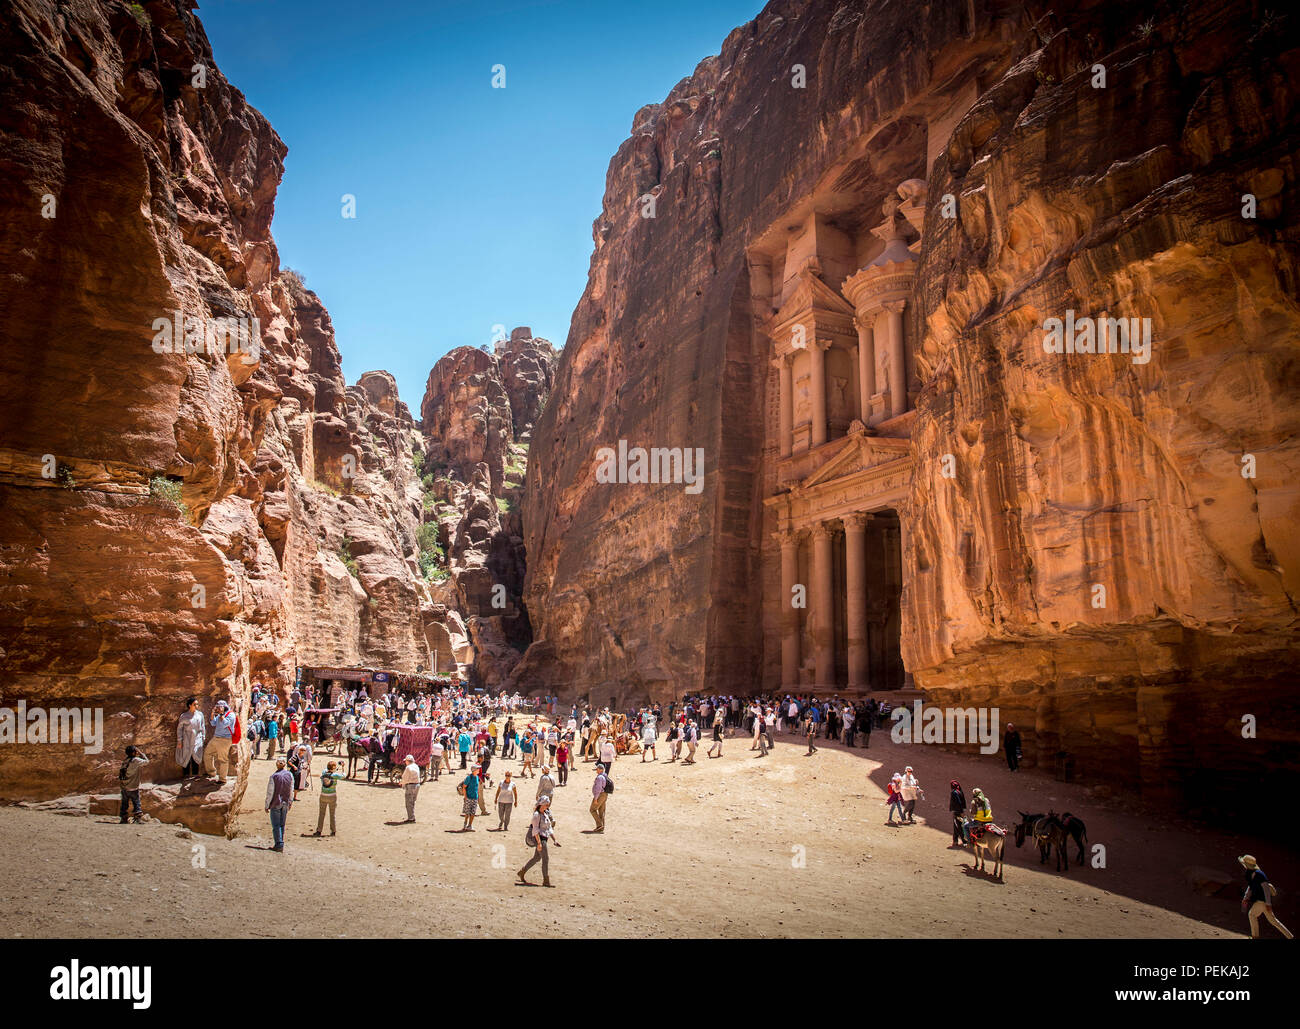 The Treasury Building found in the lost city of Petra , Jordan - Stock Image